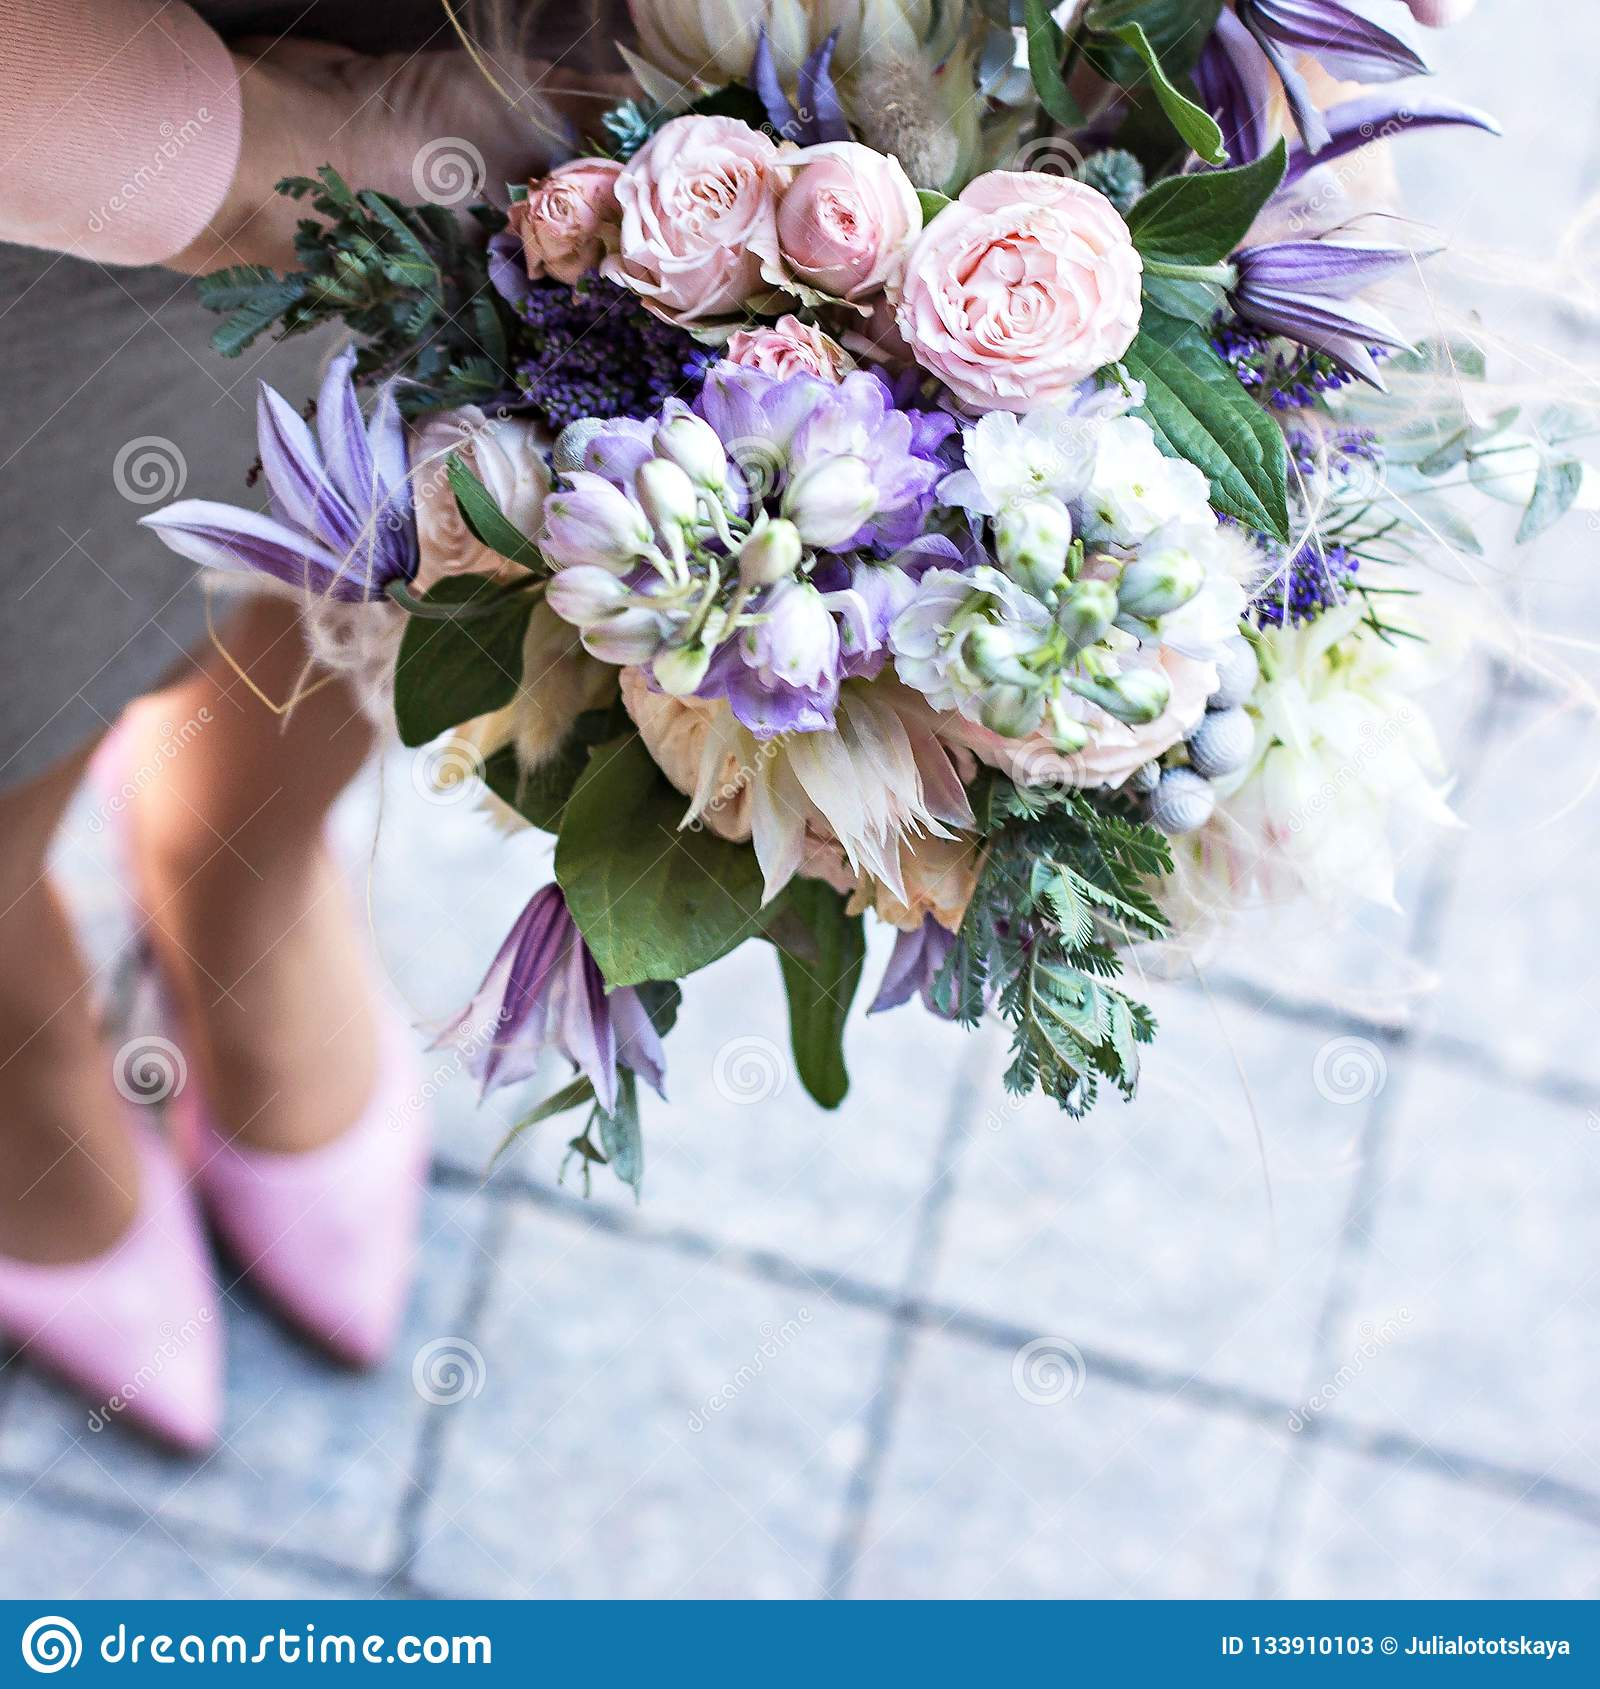 Beautiful Bouquet With Delicate Flowers Pink White Purple Bouquet Bridal Bouquet In Female Hands Stock Image Image Of Engagement Dress 133910103